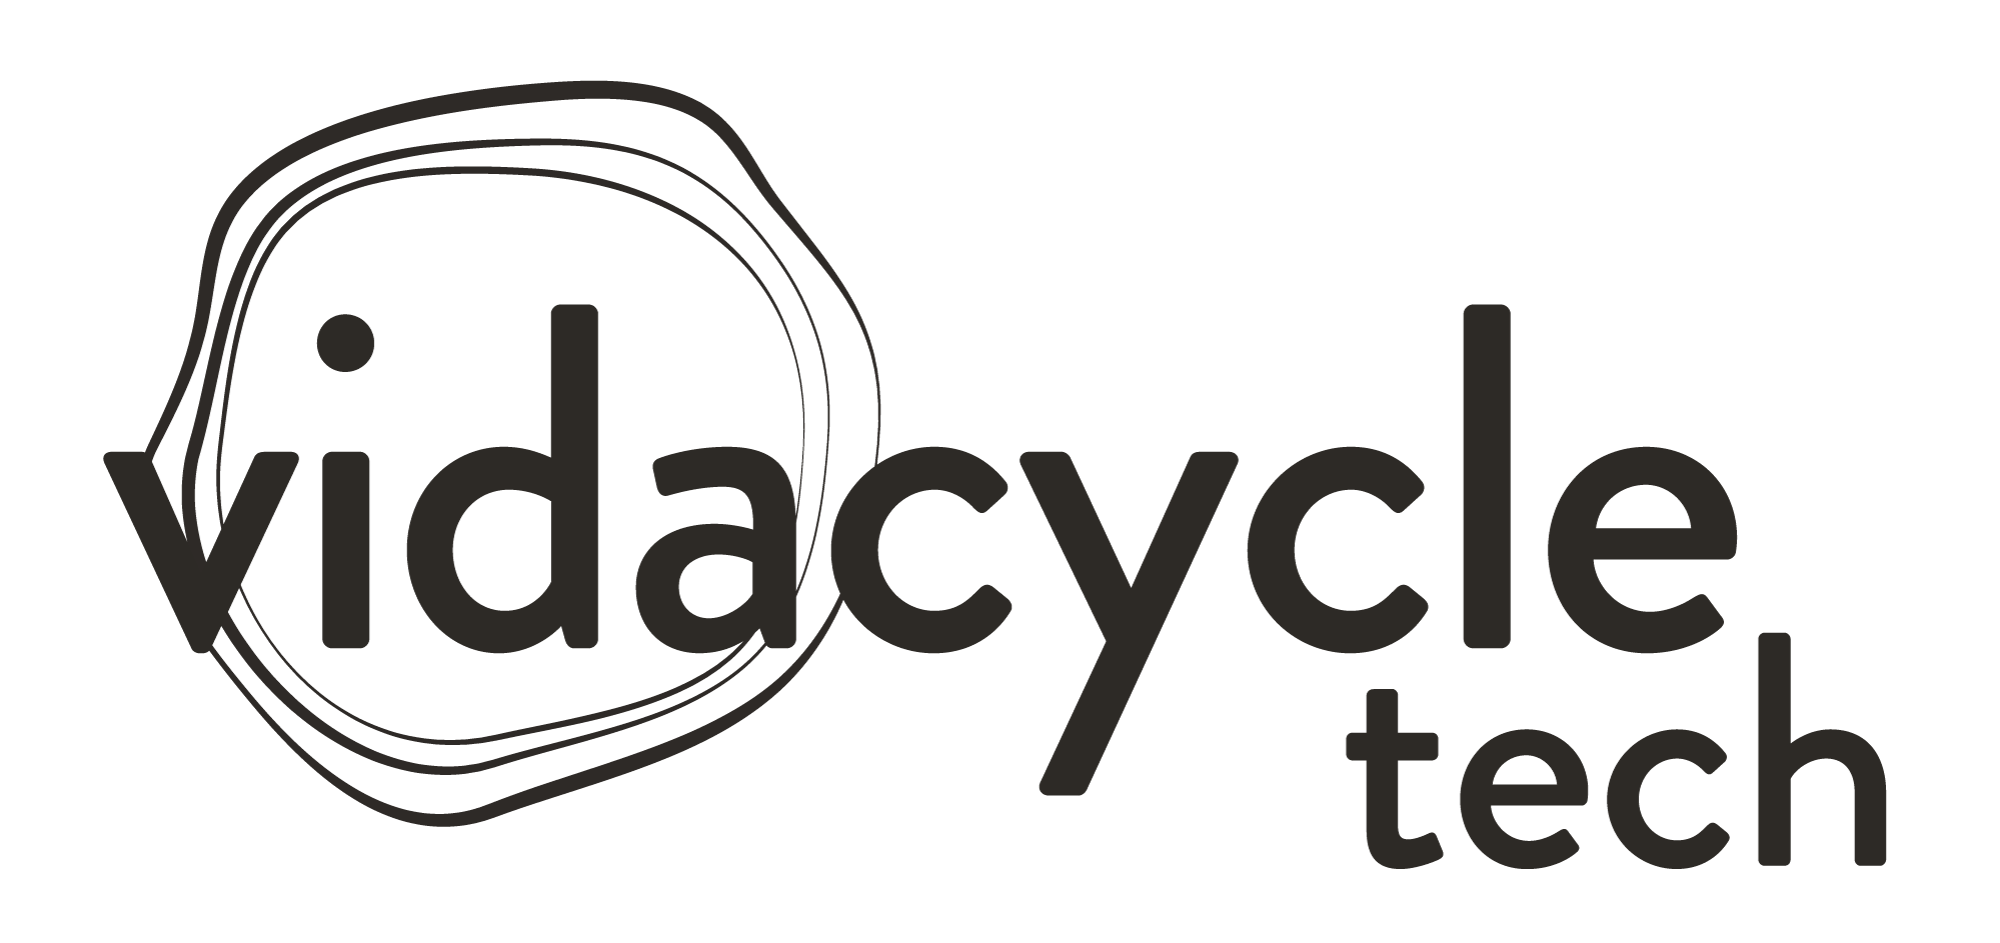 vidacycle tech